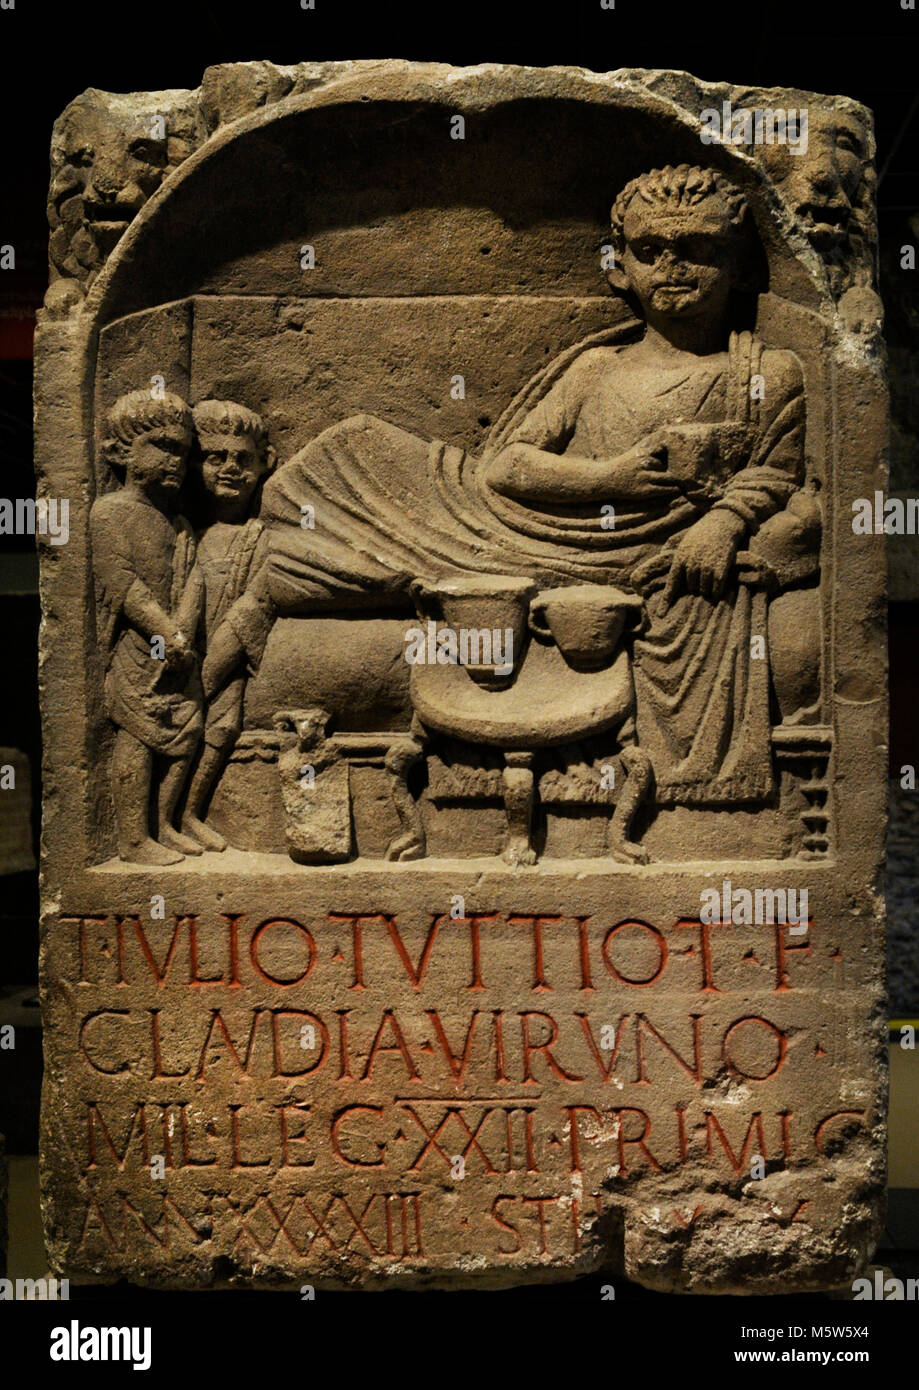 Funerary stele of the Roman legionary Julius Tuttius, soldier of the Primigenia Legion, who died at 43 years old. - Stock Image